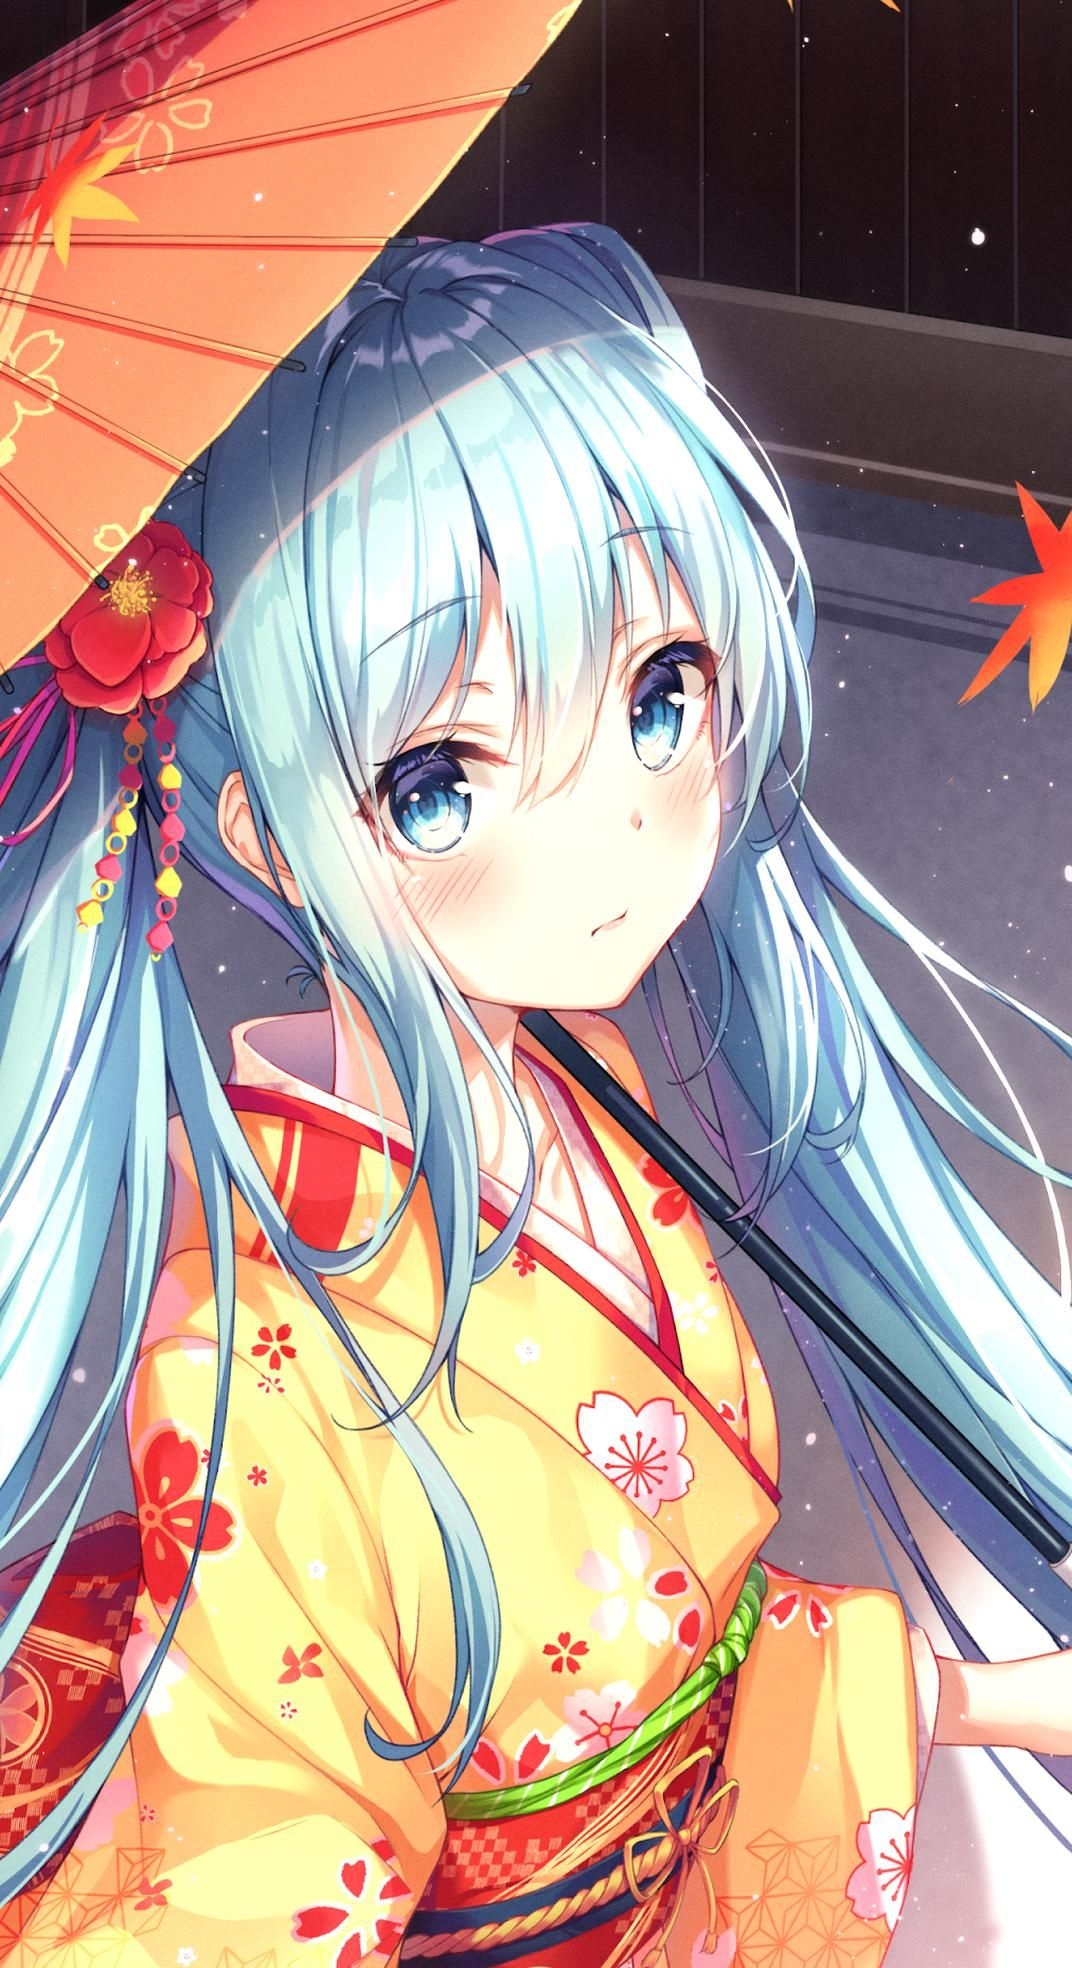 Download Hatsune Miku anime Wallpaper for your Android